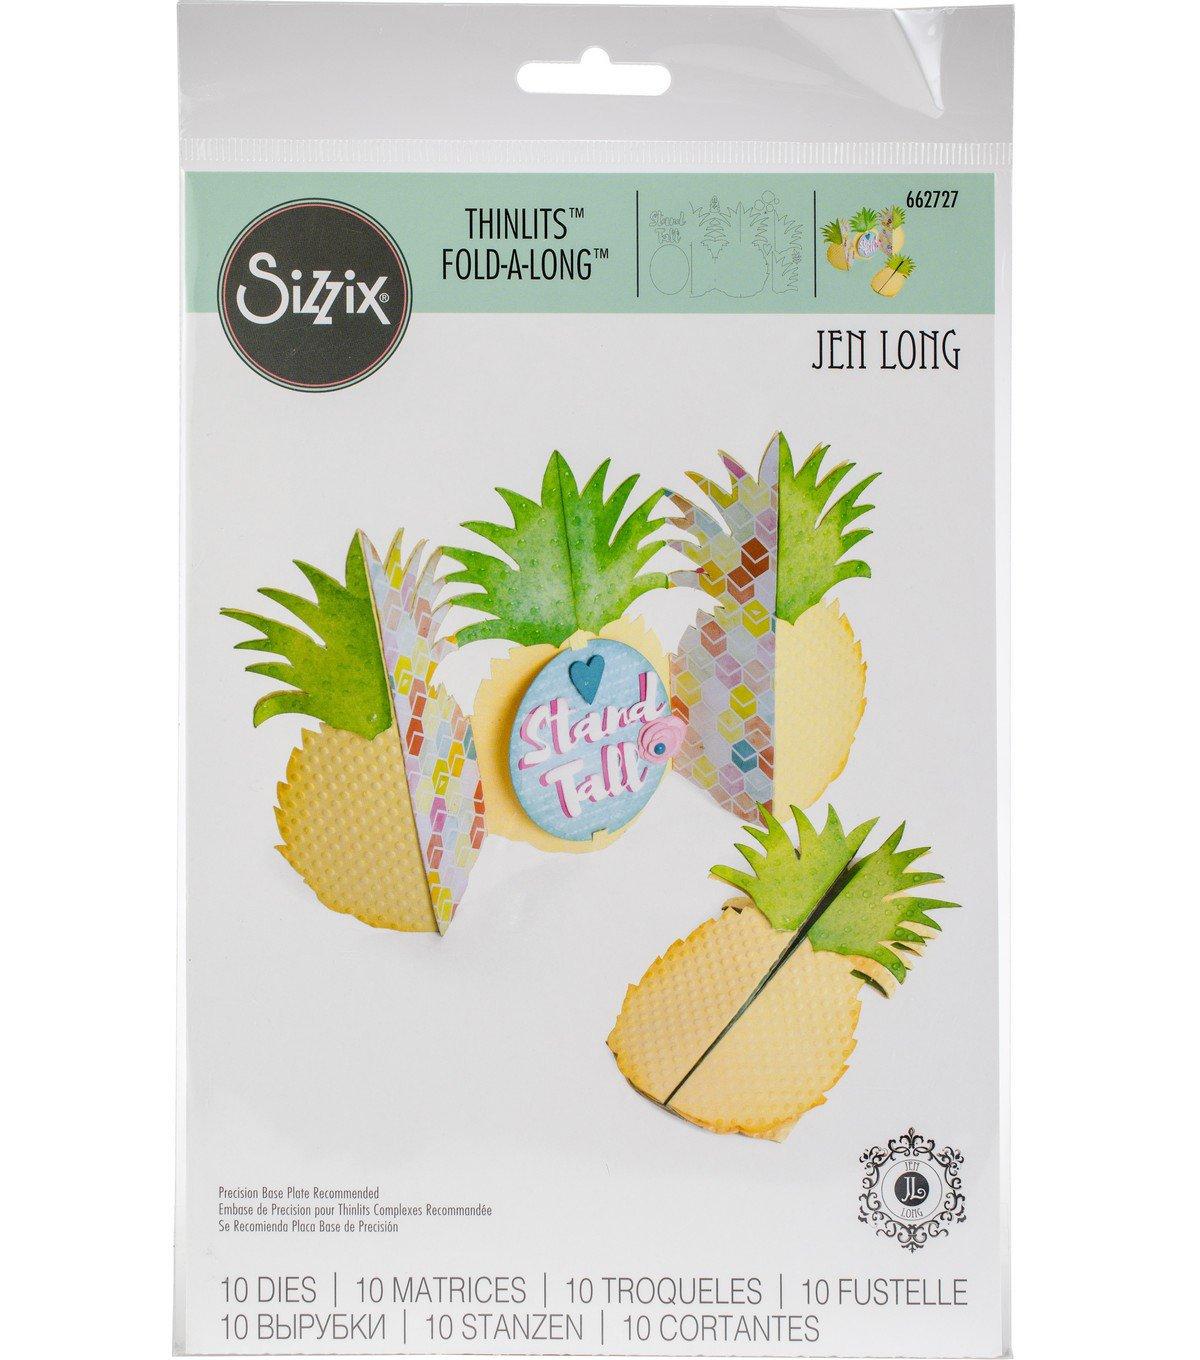 Sizzix Thinlits Die Set (10 pieces) - Card, Pineapple Fold-a-Long Die Cuts